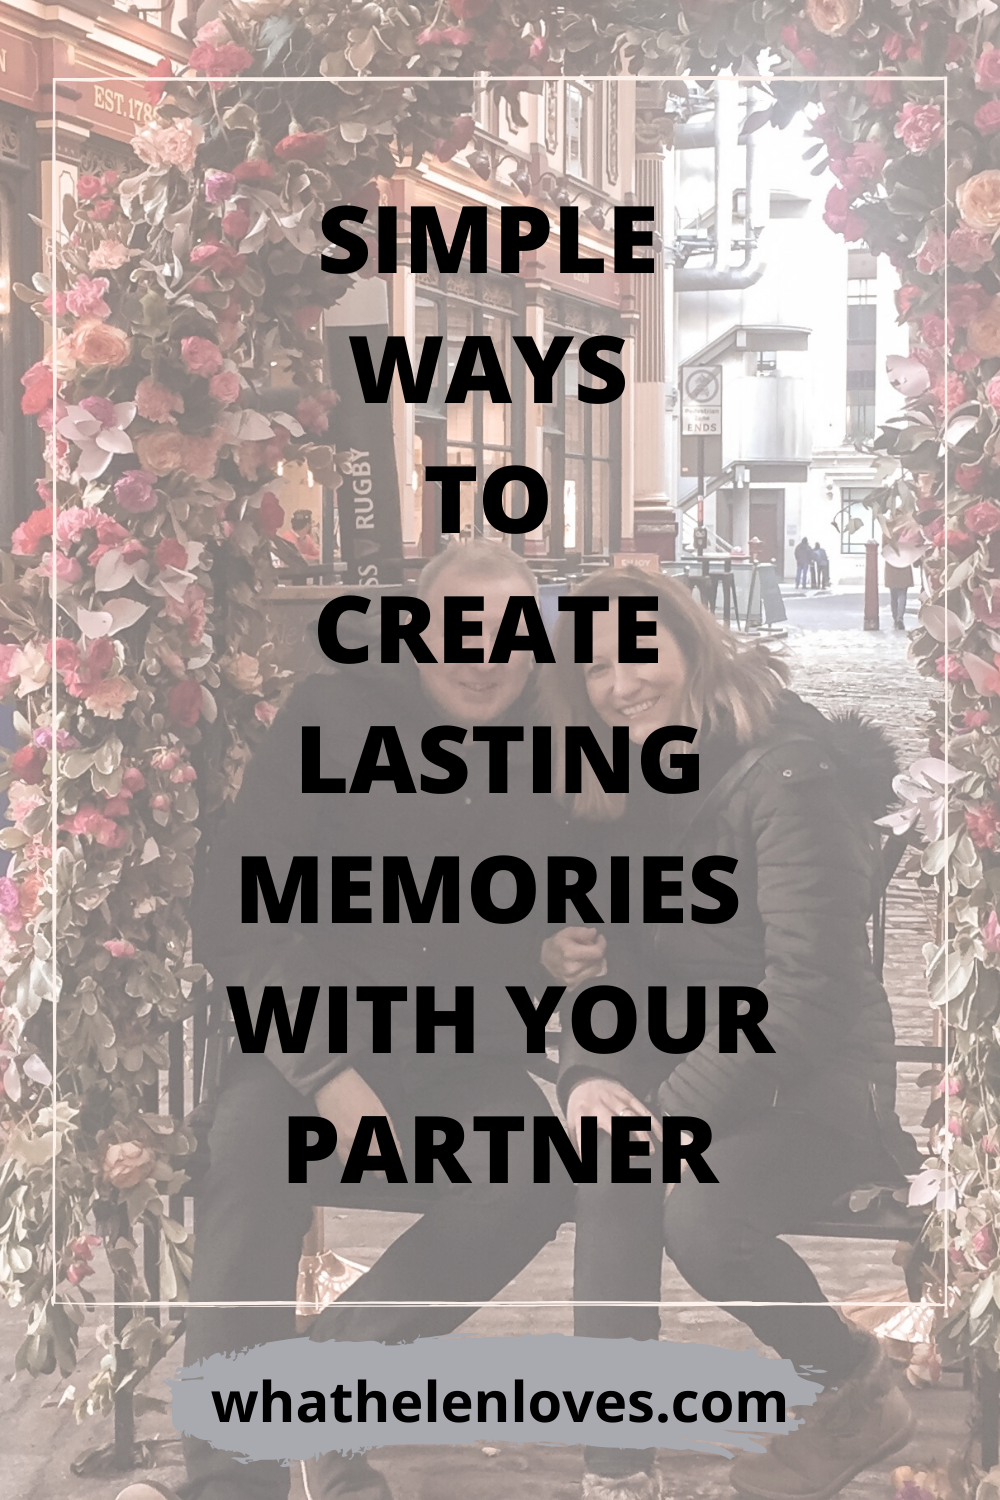 Pinterest pin for a post about simple ways to create lasting memories with your partner.